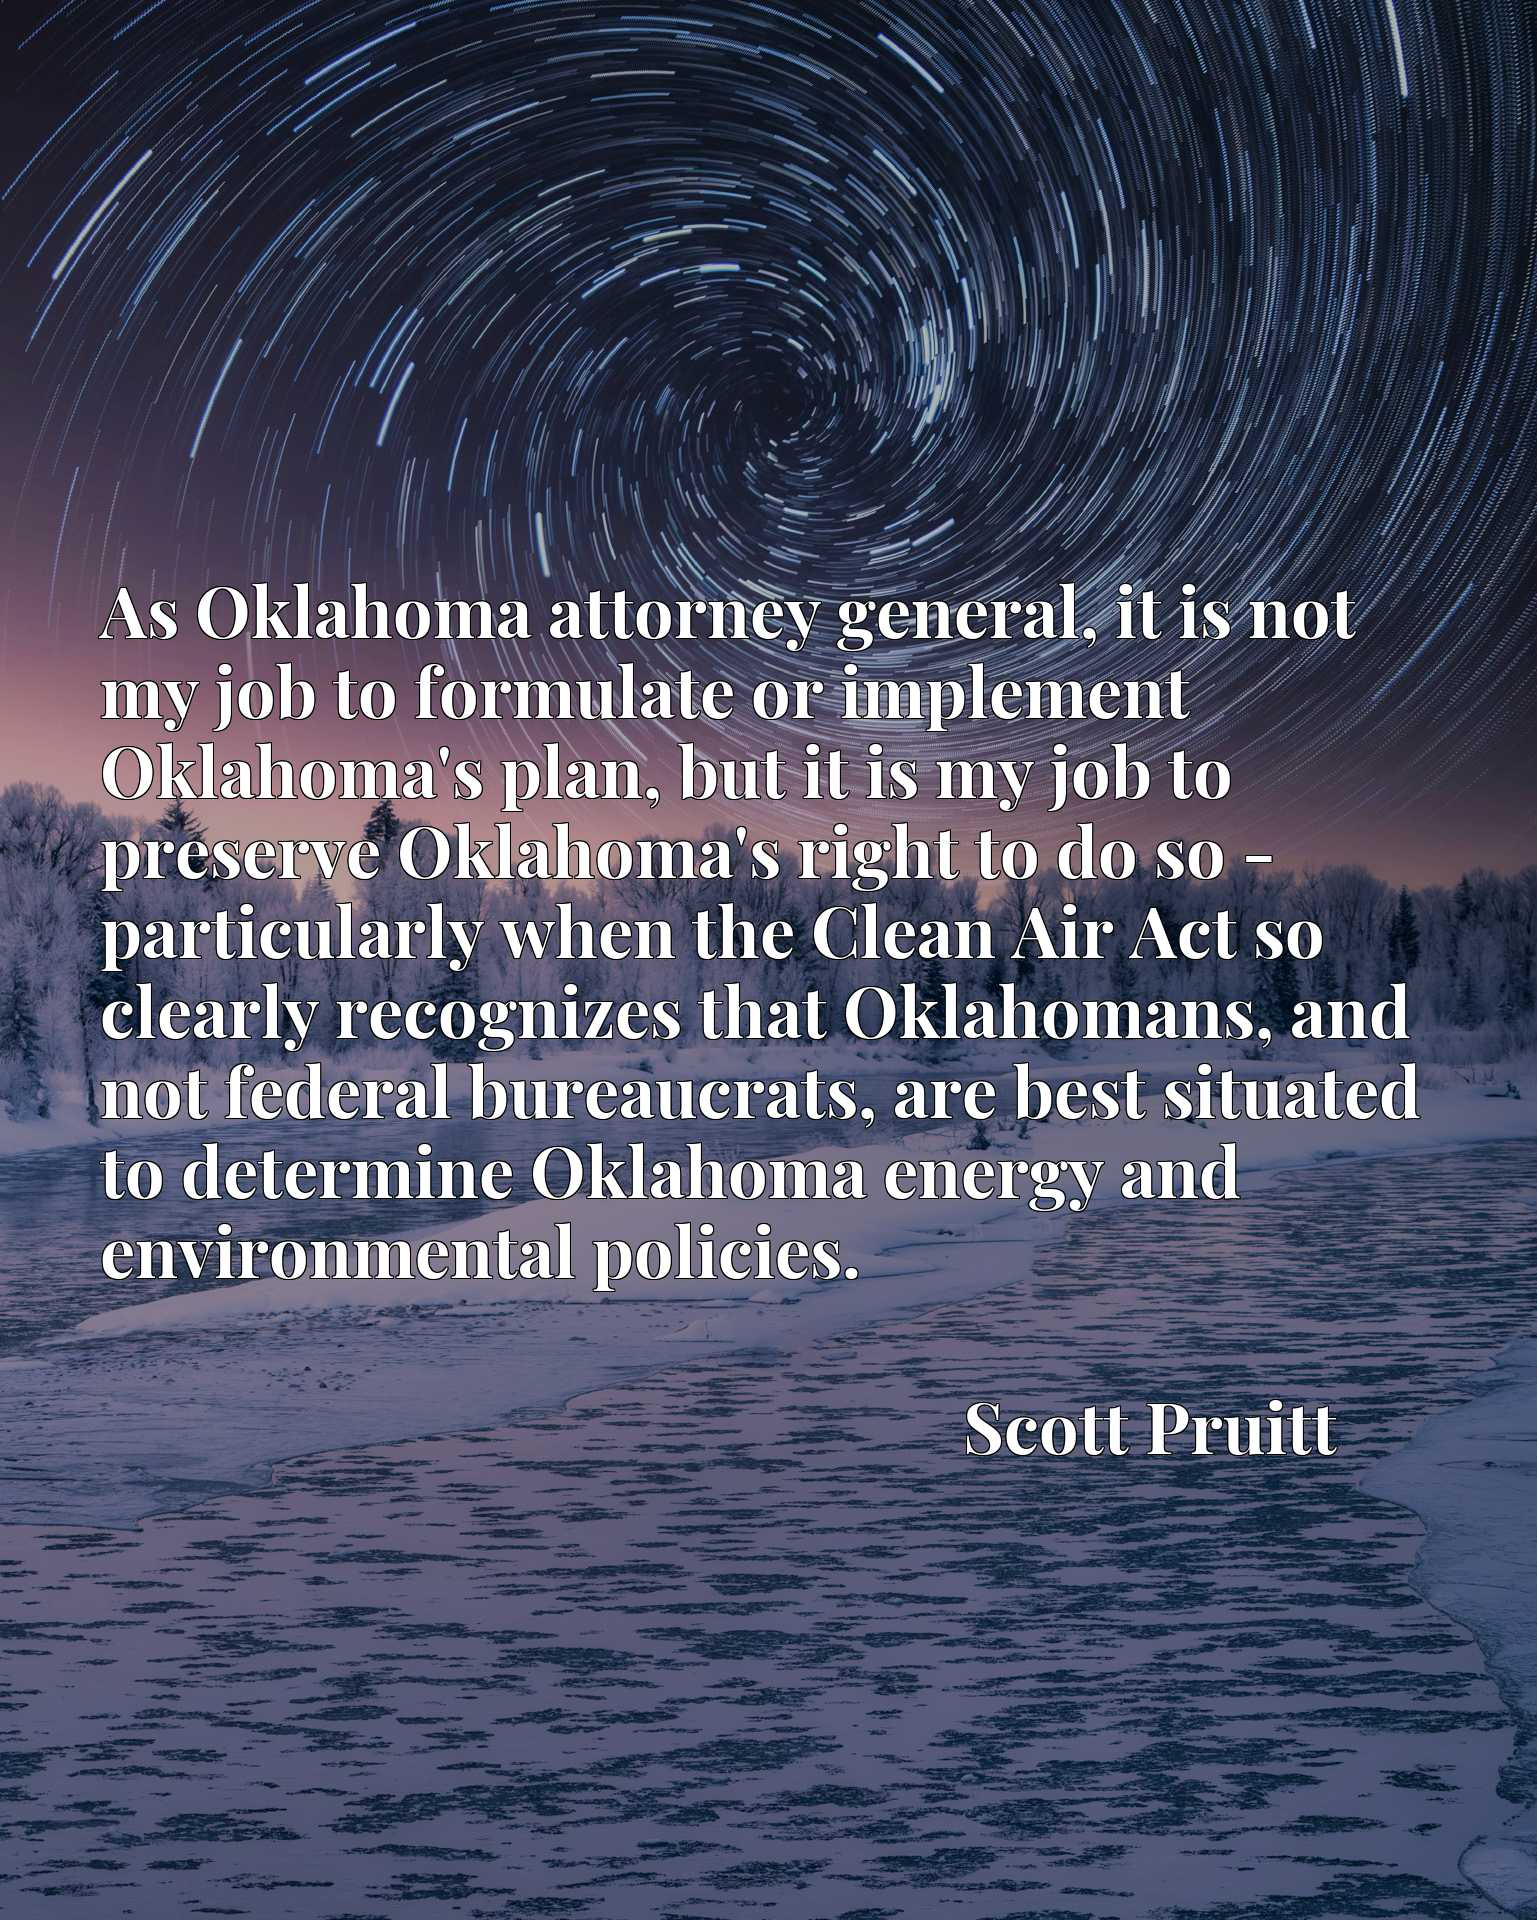 As Oklahoma attorney general, it is not my job to formulate or implement Oklahoma's plan, but it is my job to preserve Oklahoma's right to do so - particularly when the Clean Air Act so clearly recognizes that Oklahomans, and not federal bureaucrats, are best situated to determine Oklahoma energy and environmental policies.